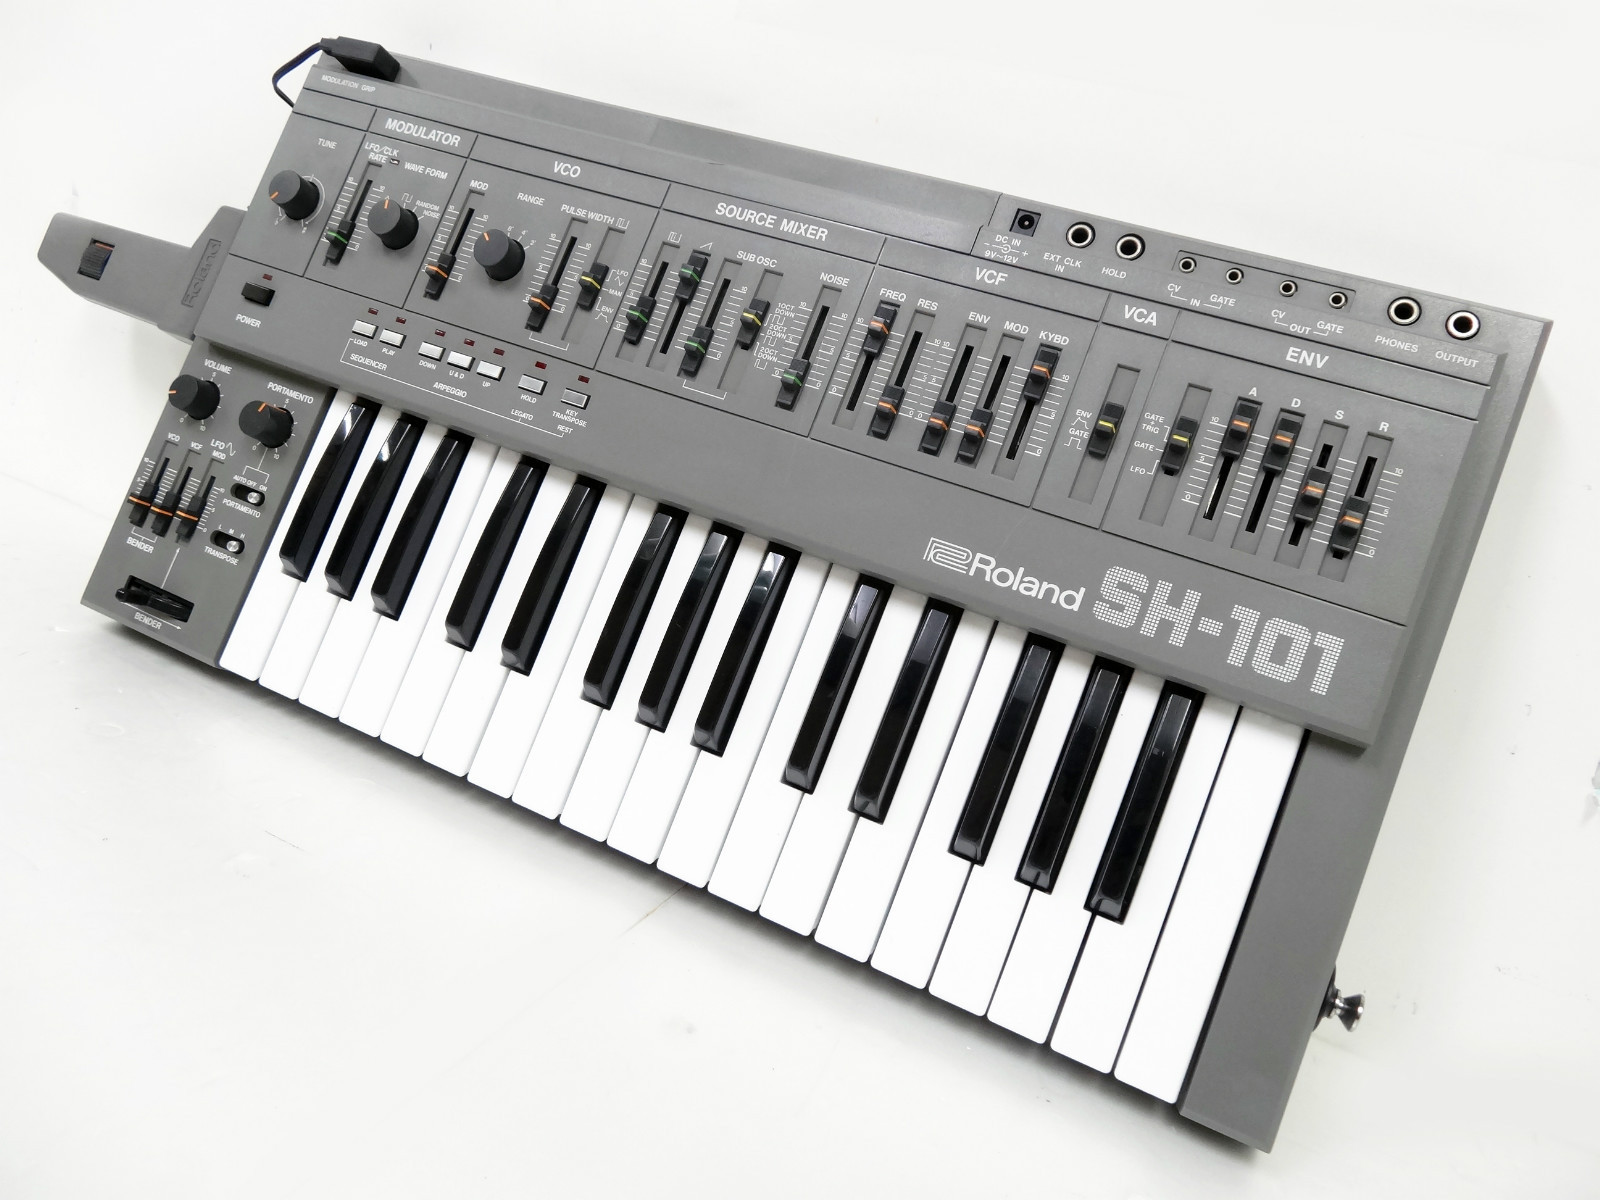 Looks like Roland is adding the old keytar to its Boutique